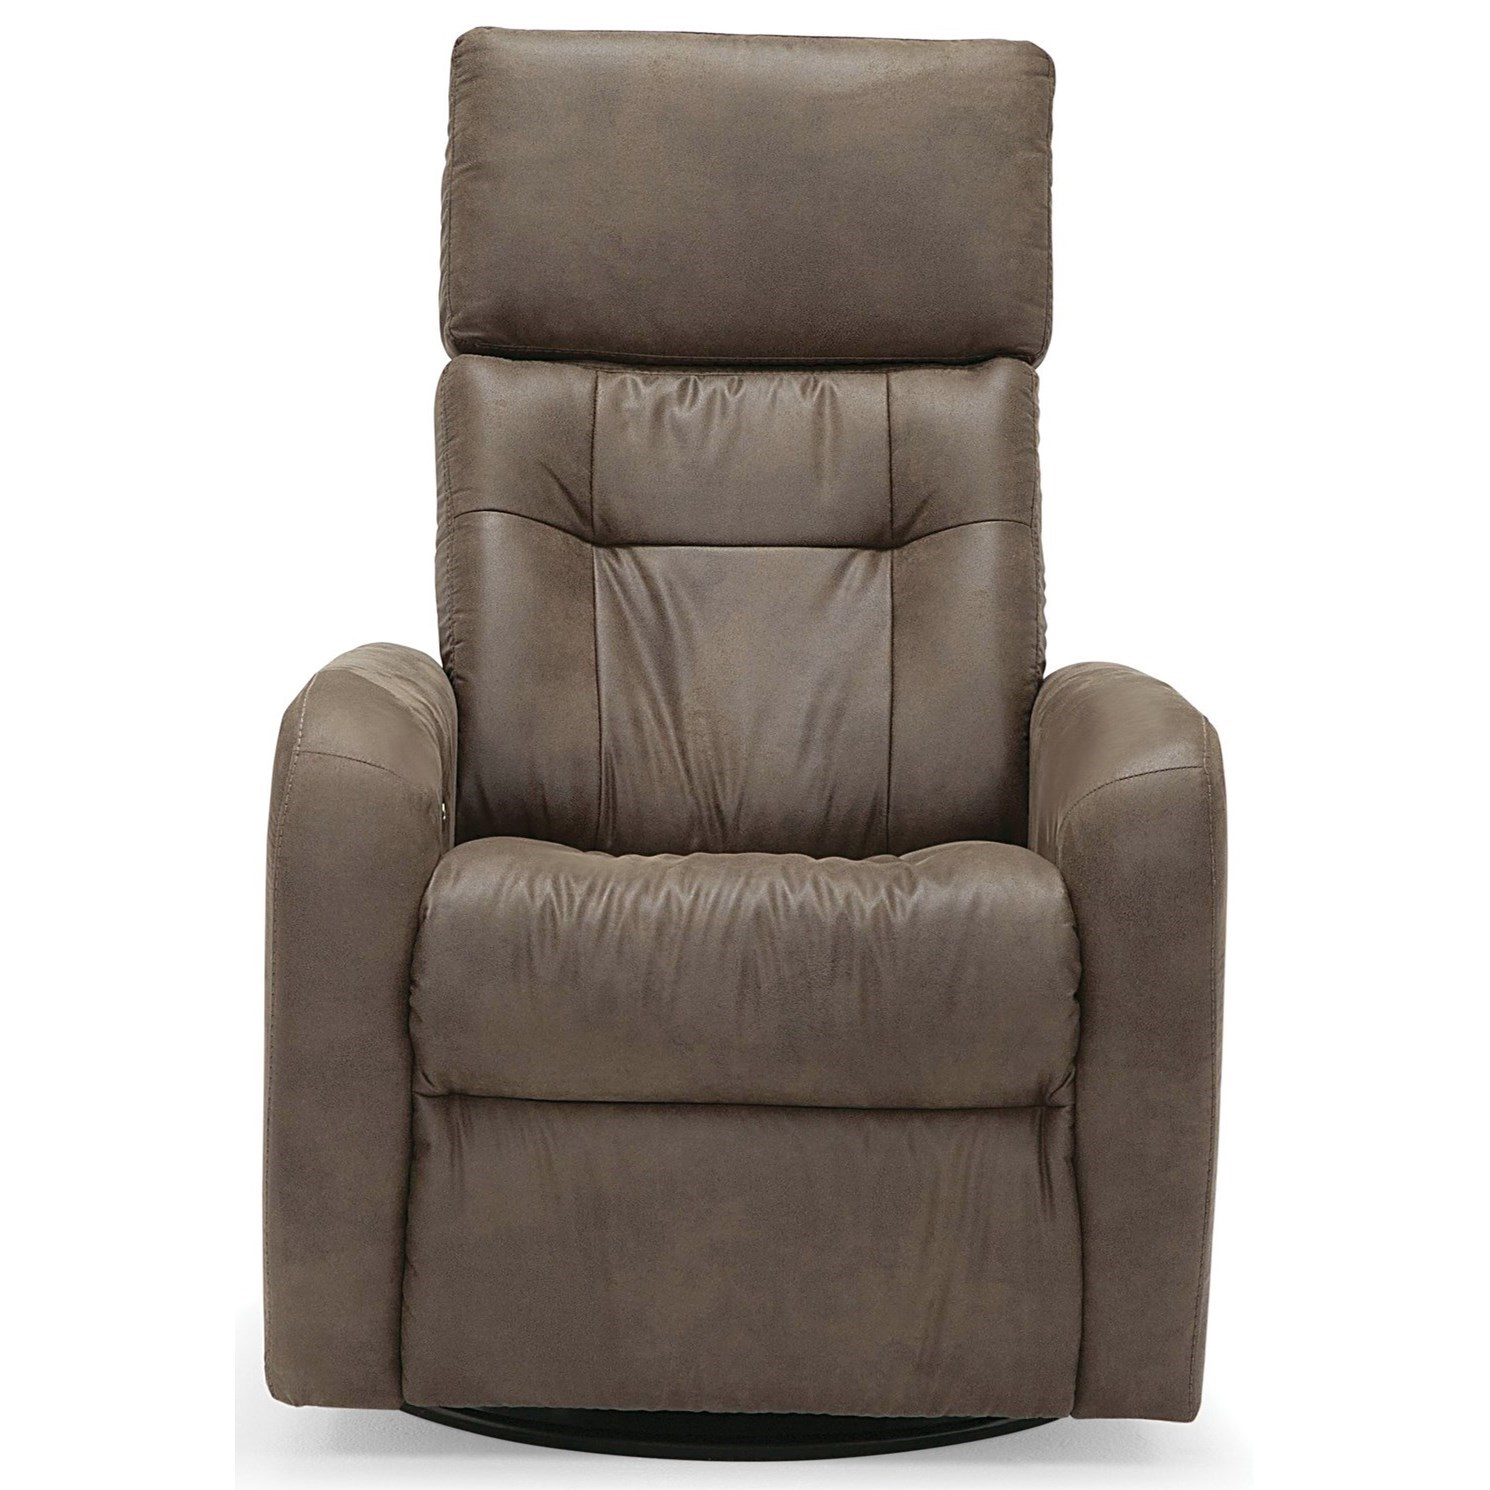 Sorrento Swivel Glider Power Recliner by Palliser at Upper Room Home Furnishings